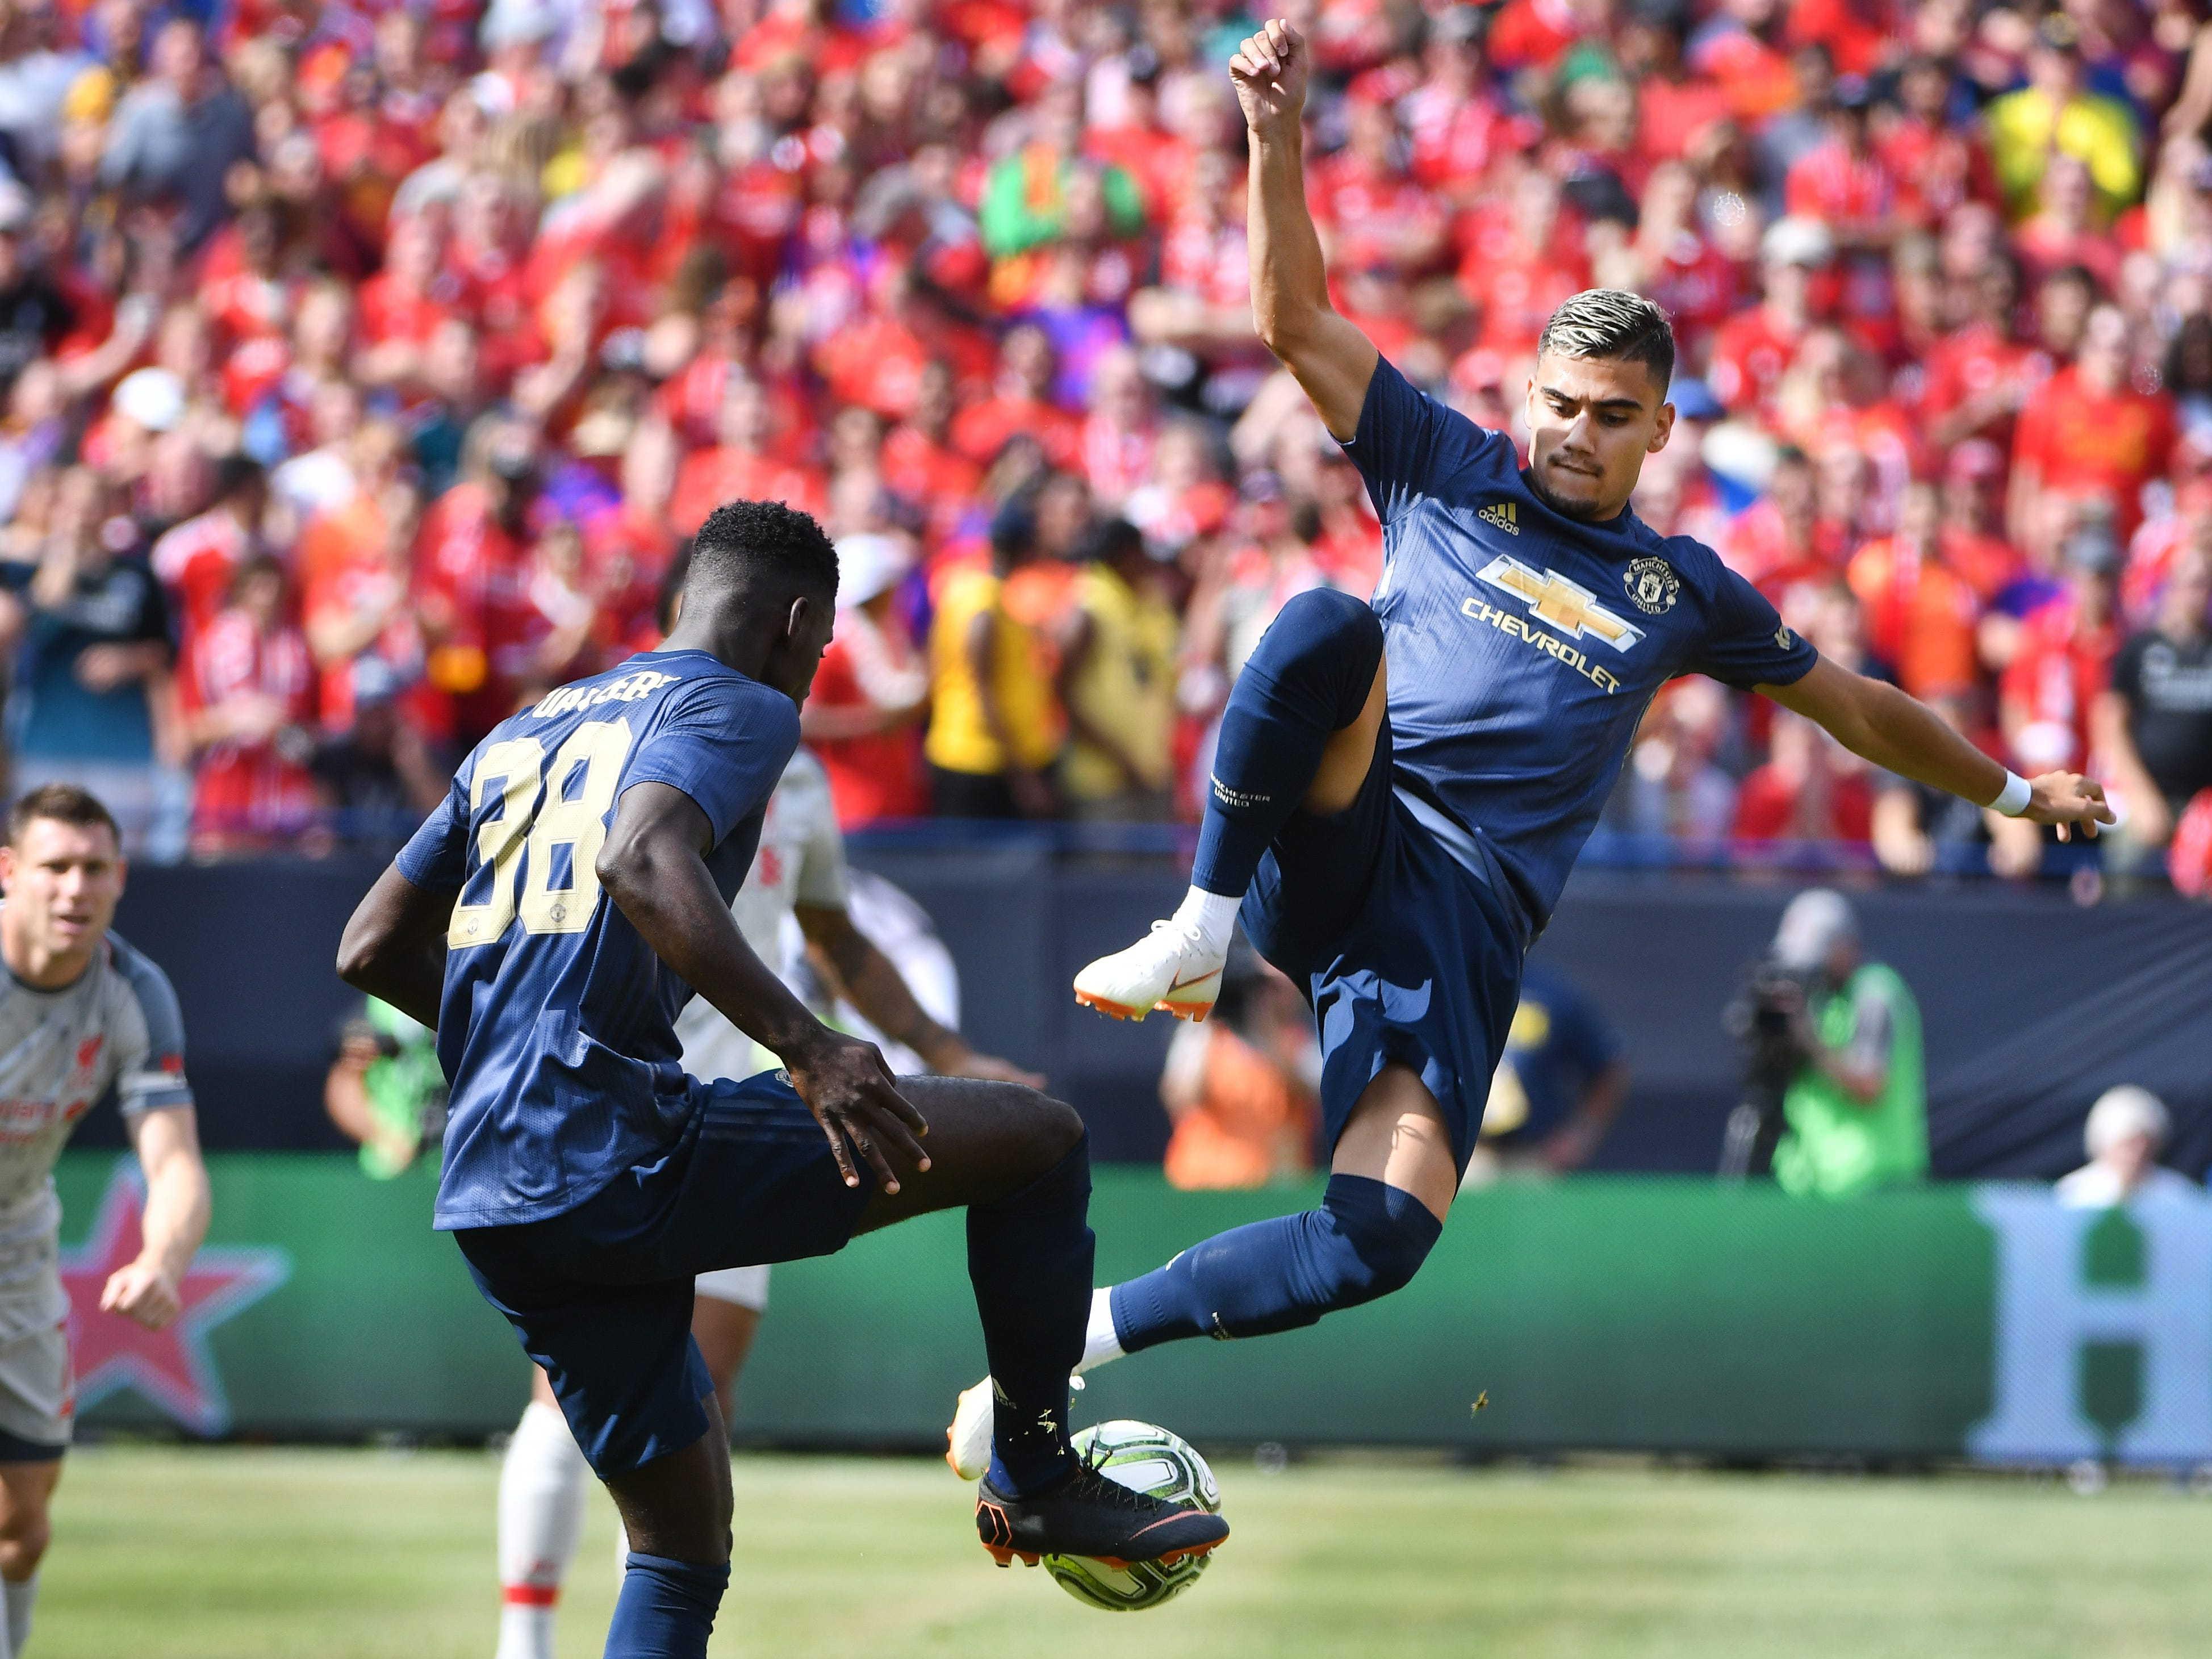 Manchester's Andreas Pereira gets some air trying to bring down a ball with teammate Axel Tuanzebe in the first half.